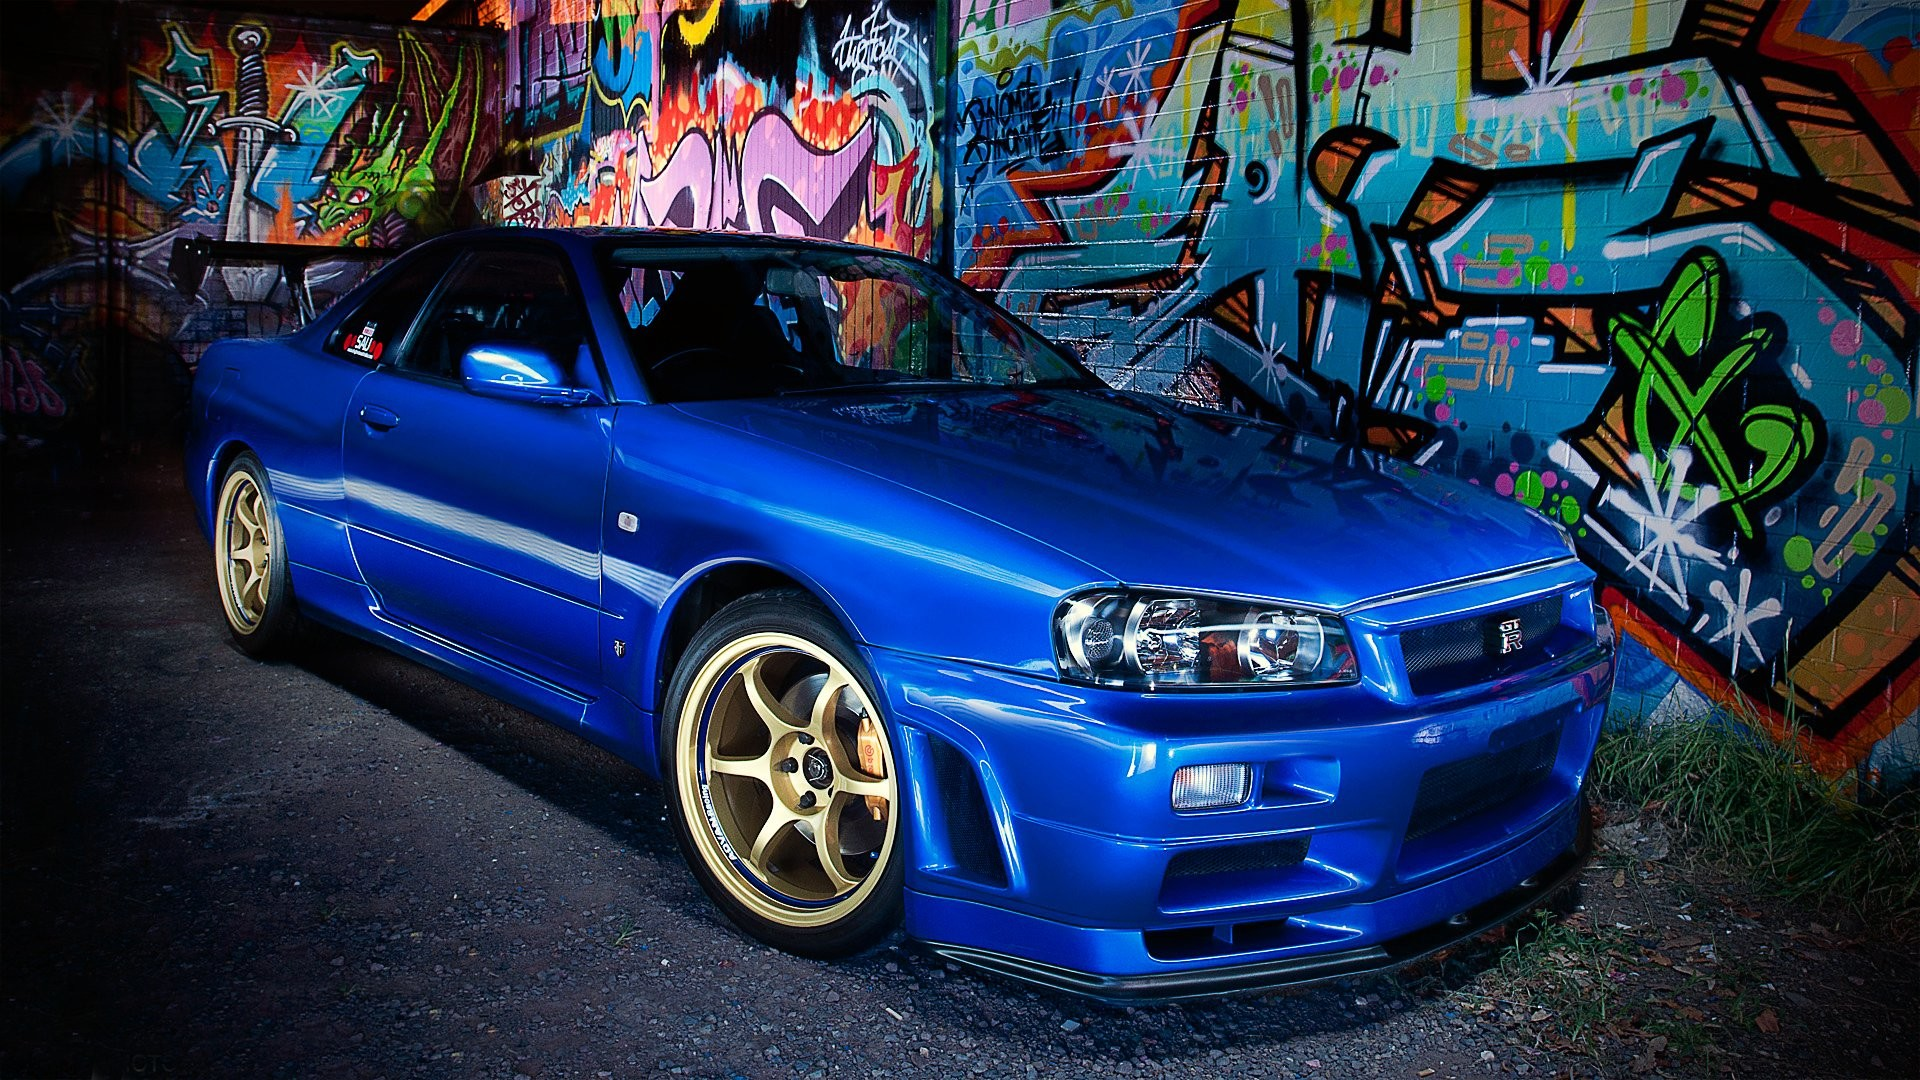 Nissan Skyline Wallpaper Hd 73 Images